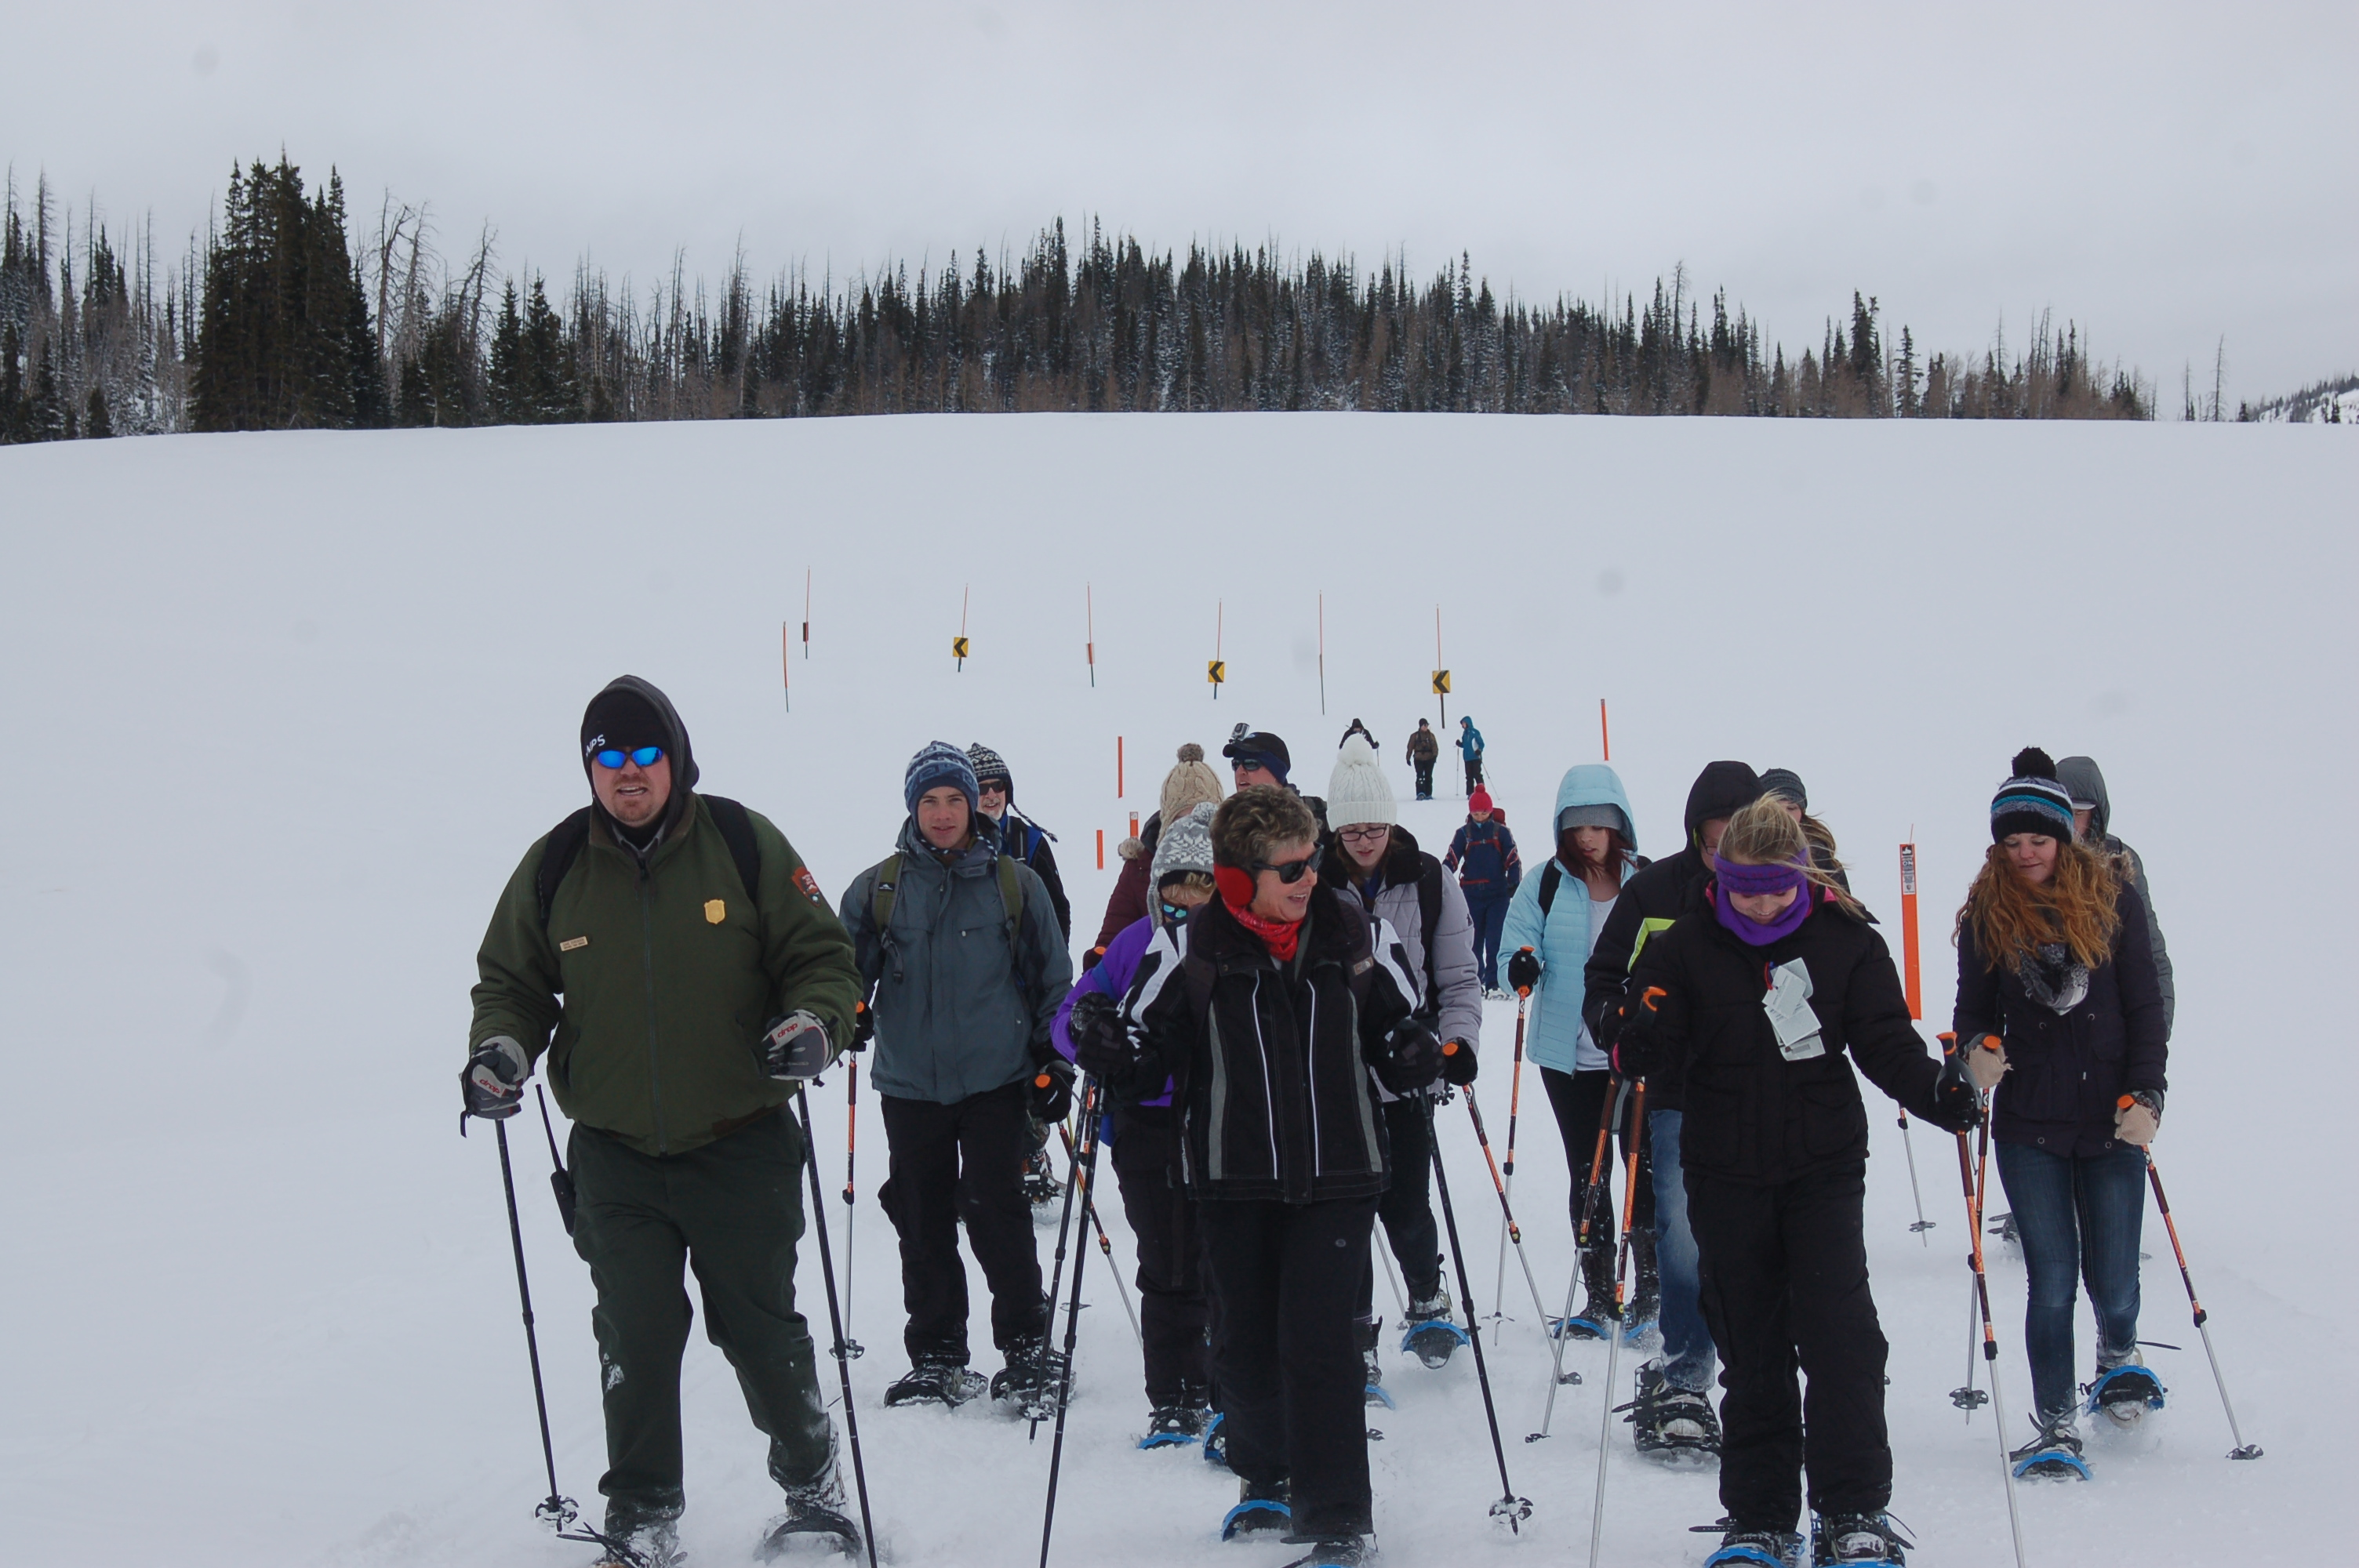 Guests of the guided snowshoe hike take in the views and learn about the geology, flora and fauna of the park. Cedar Breaks National Monument, Utah, January 16, 2016 | Photo by Hollie Reina, St. George News